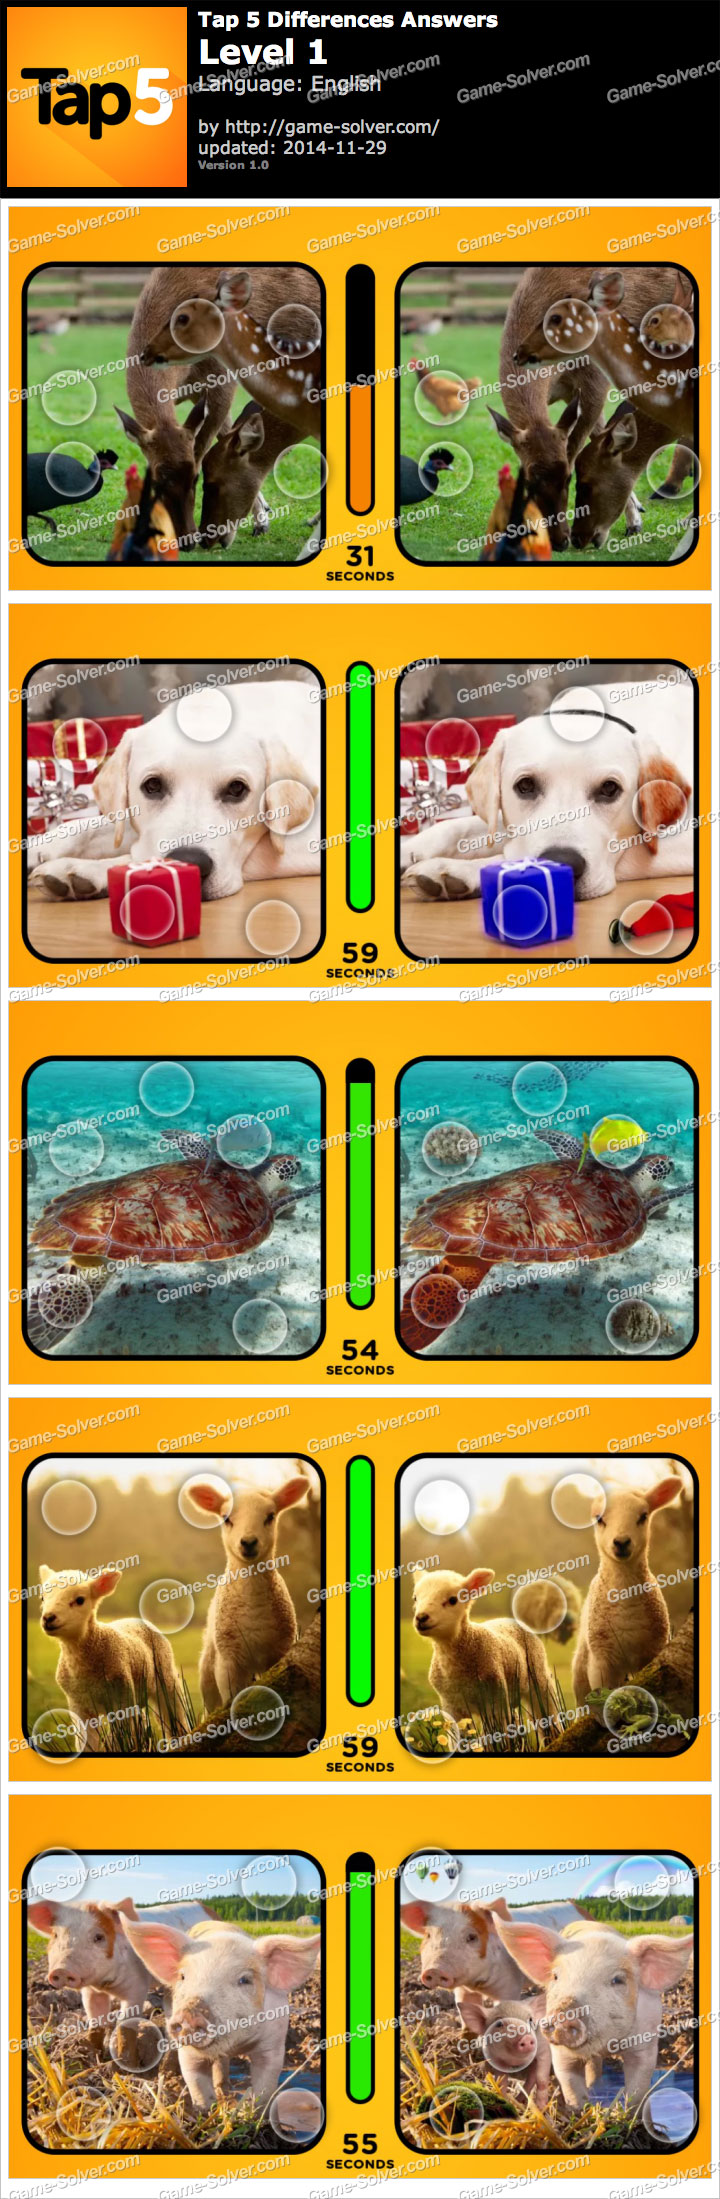 Tap 5 Differences Level 1